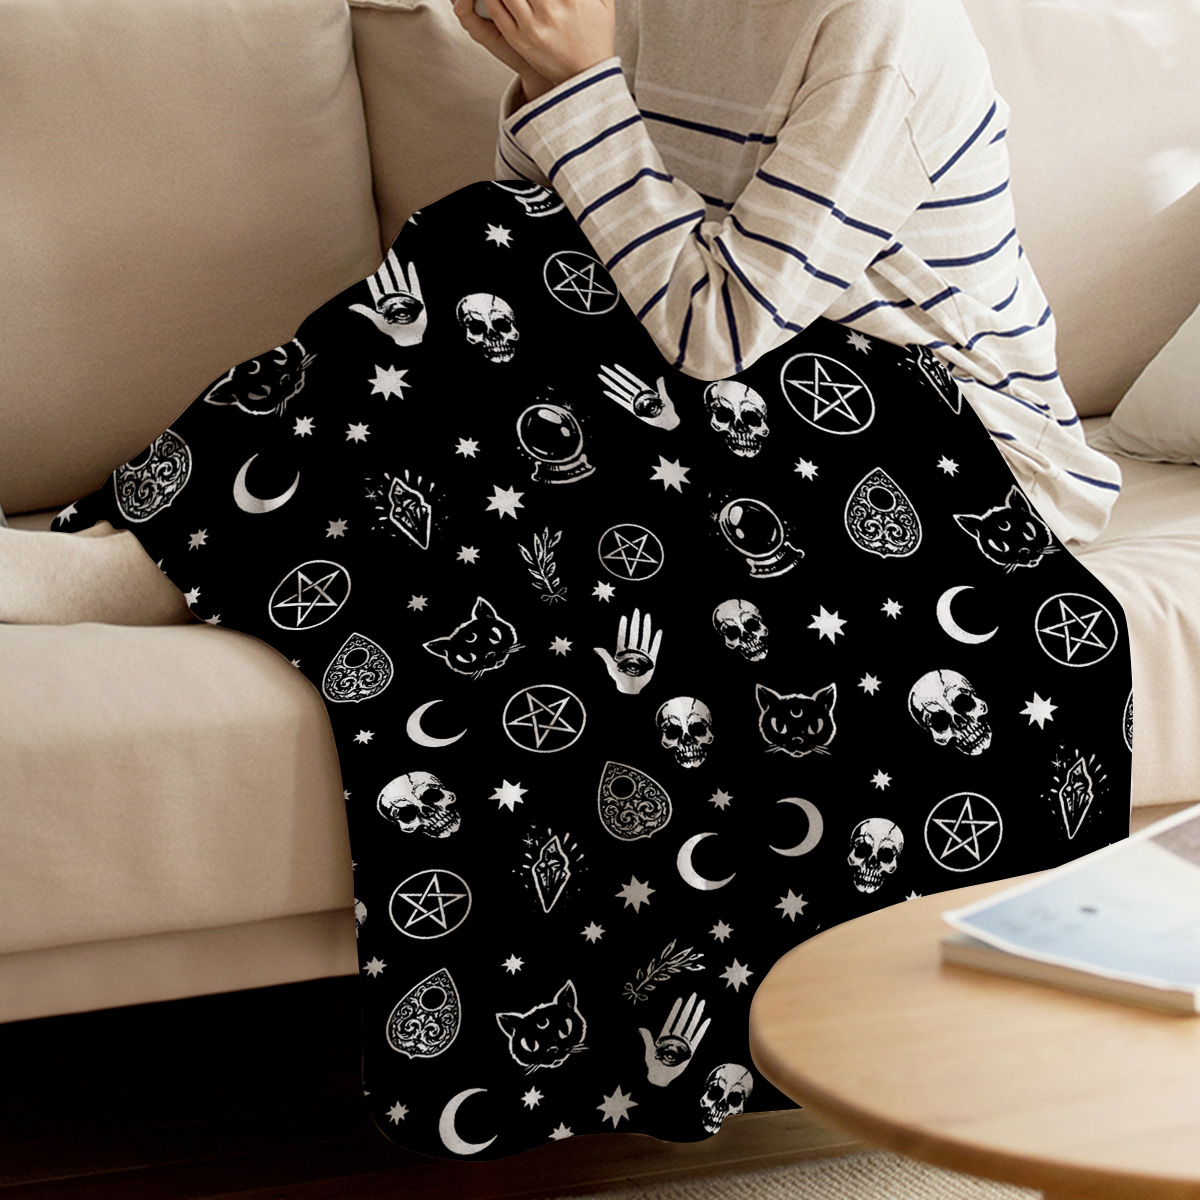 Throw Blanket Black Skull Head And Cat Throw Blanket Soft Warm Flannel Blanket Flannel Blanket